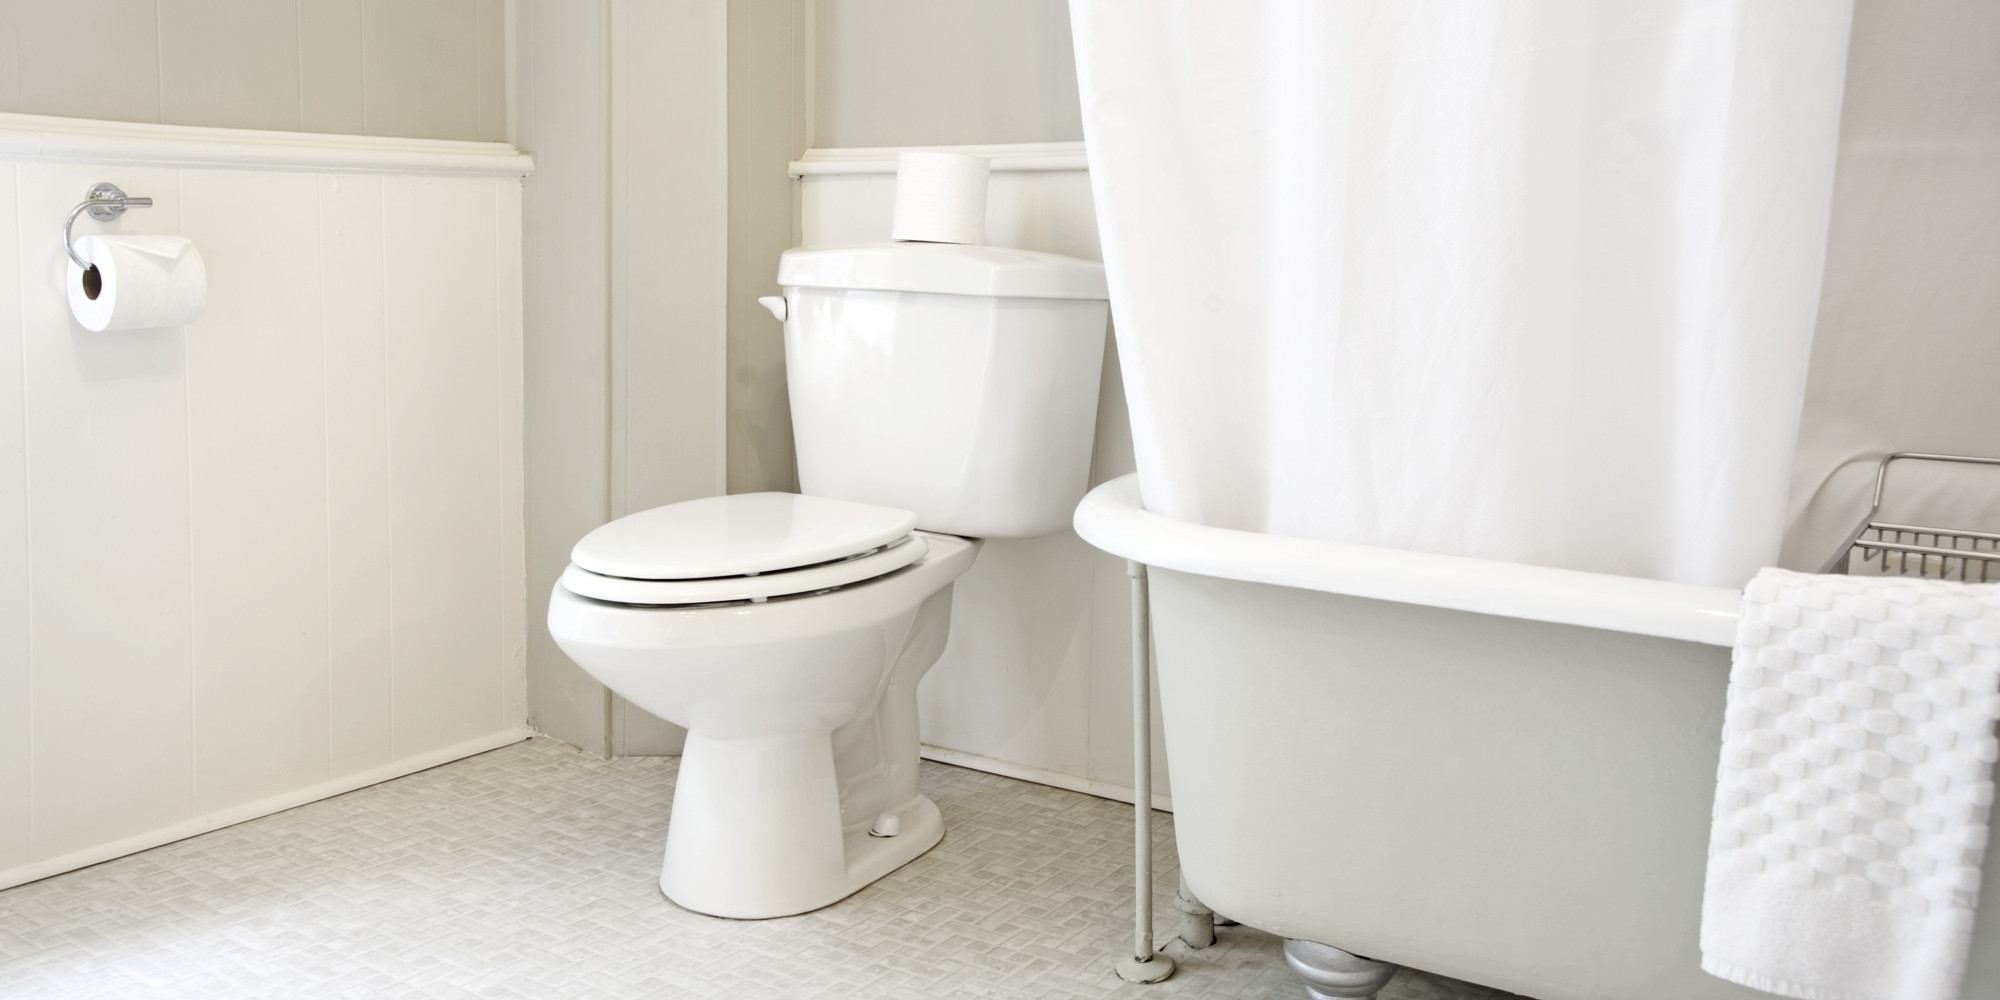 Amazing 10 Surprising Hacks That Will Make Your Bathroom A Better Place | HuffPost